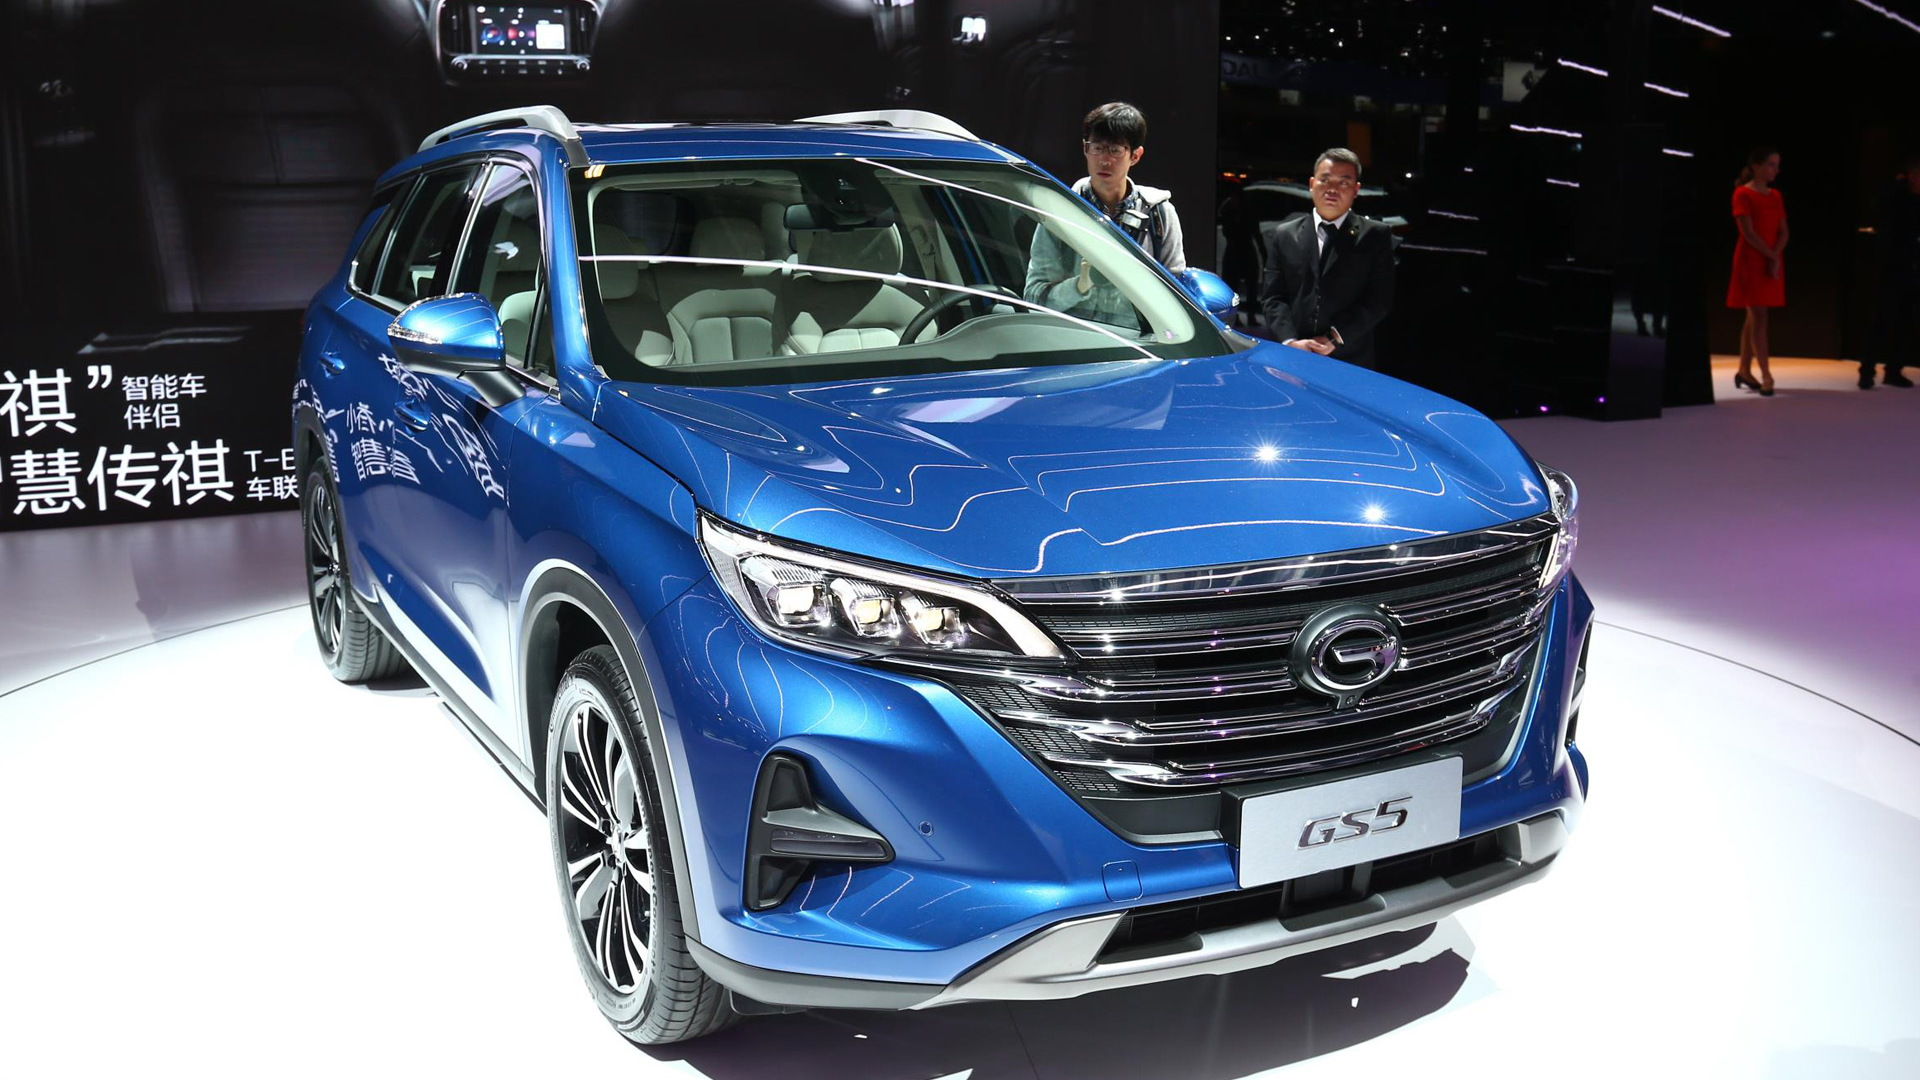 2019 GAC GS5, 2018 Paris auto show